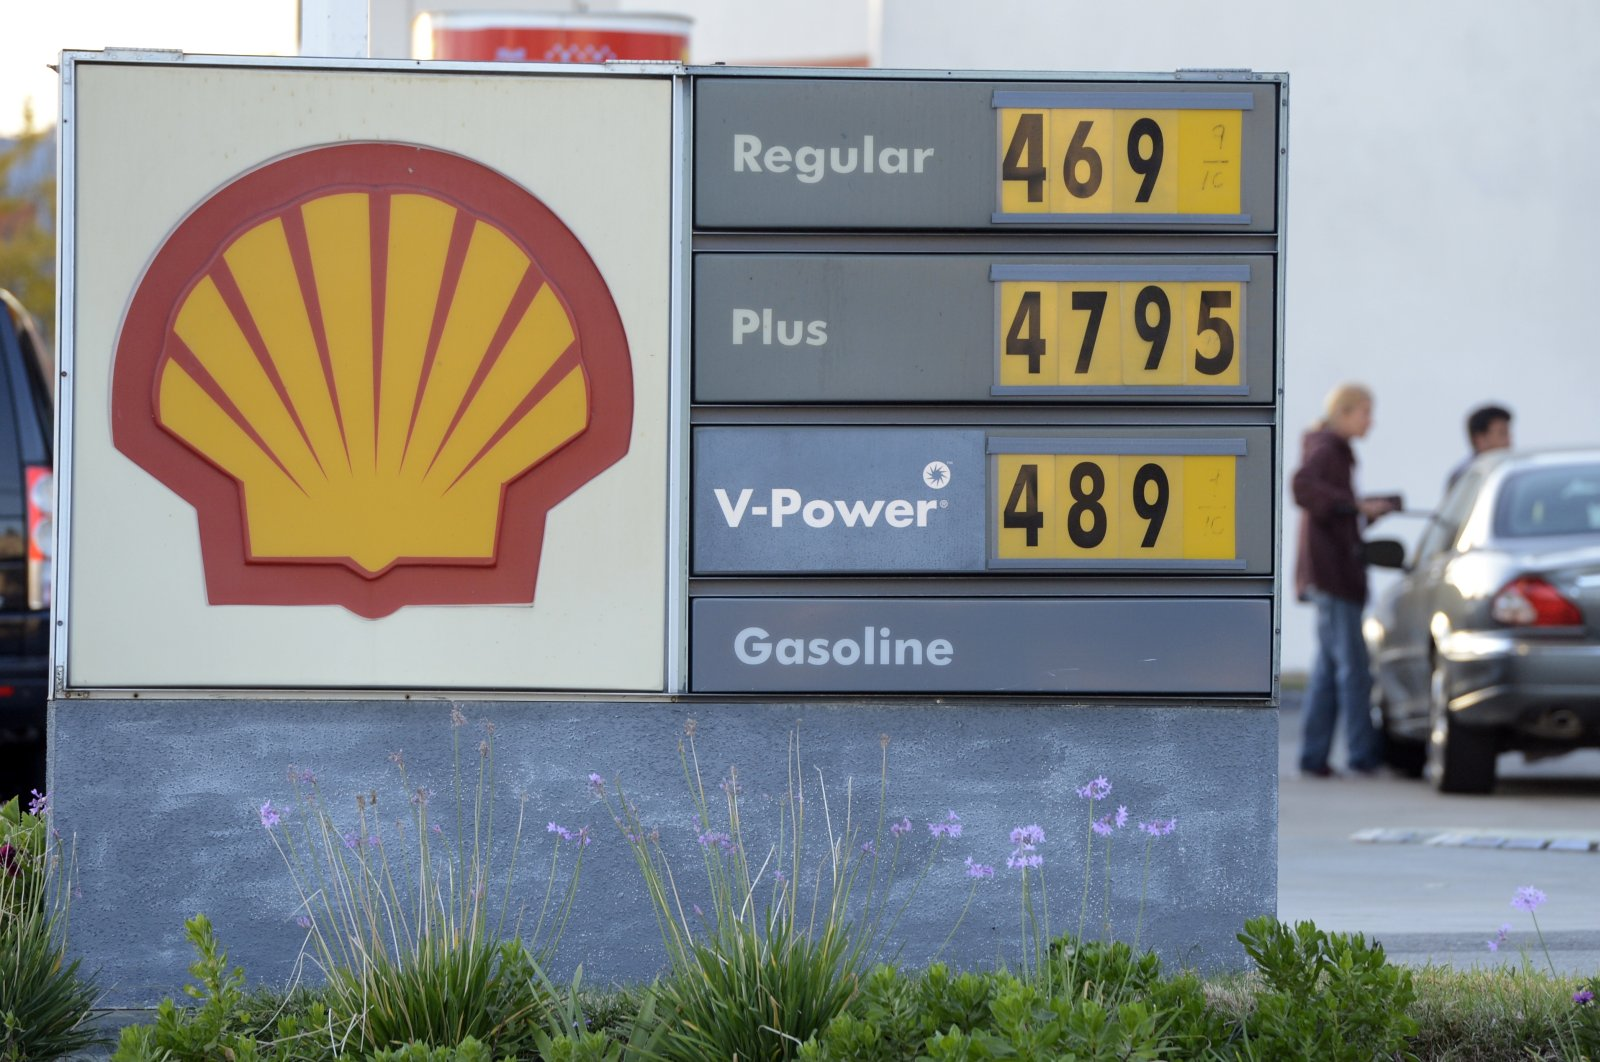 A woman pumps fuel at a Shell station in the Pacific Palisades neighborhood, Los Angeles, California, U.S., Feb. 3, 2021. (EPA Photo)